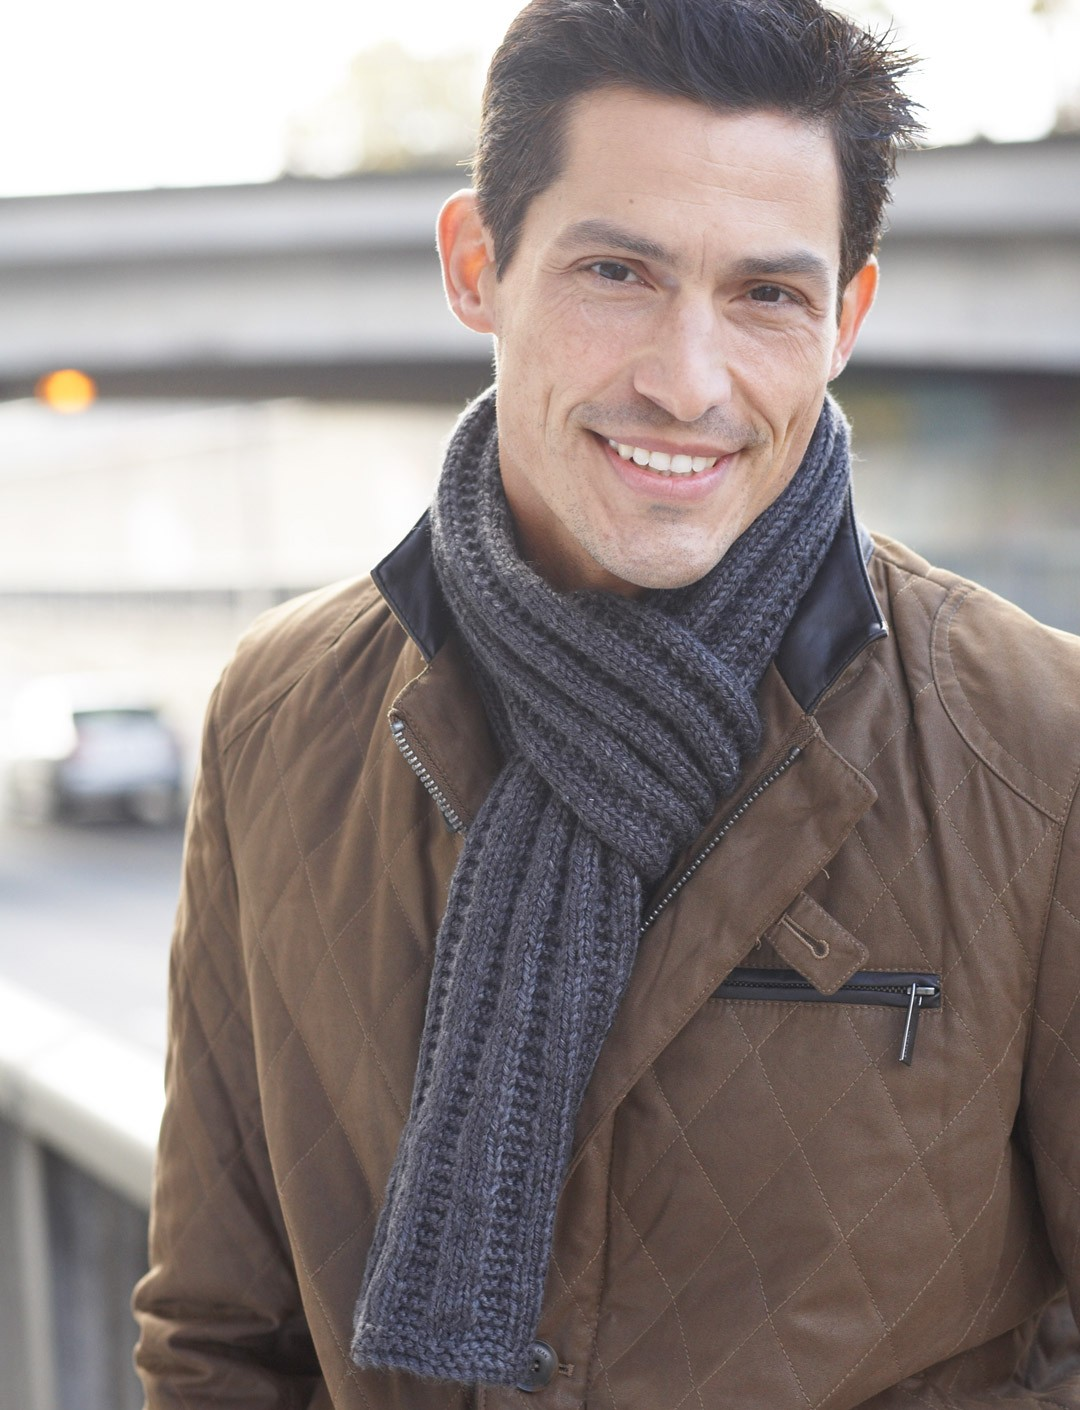 Scarfs Men Scarf And Casual On Pinterest Nice Scarves: Caron Men's Interchangeable Scarves, Knit Pattern